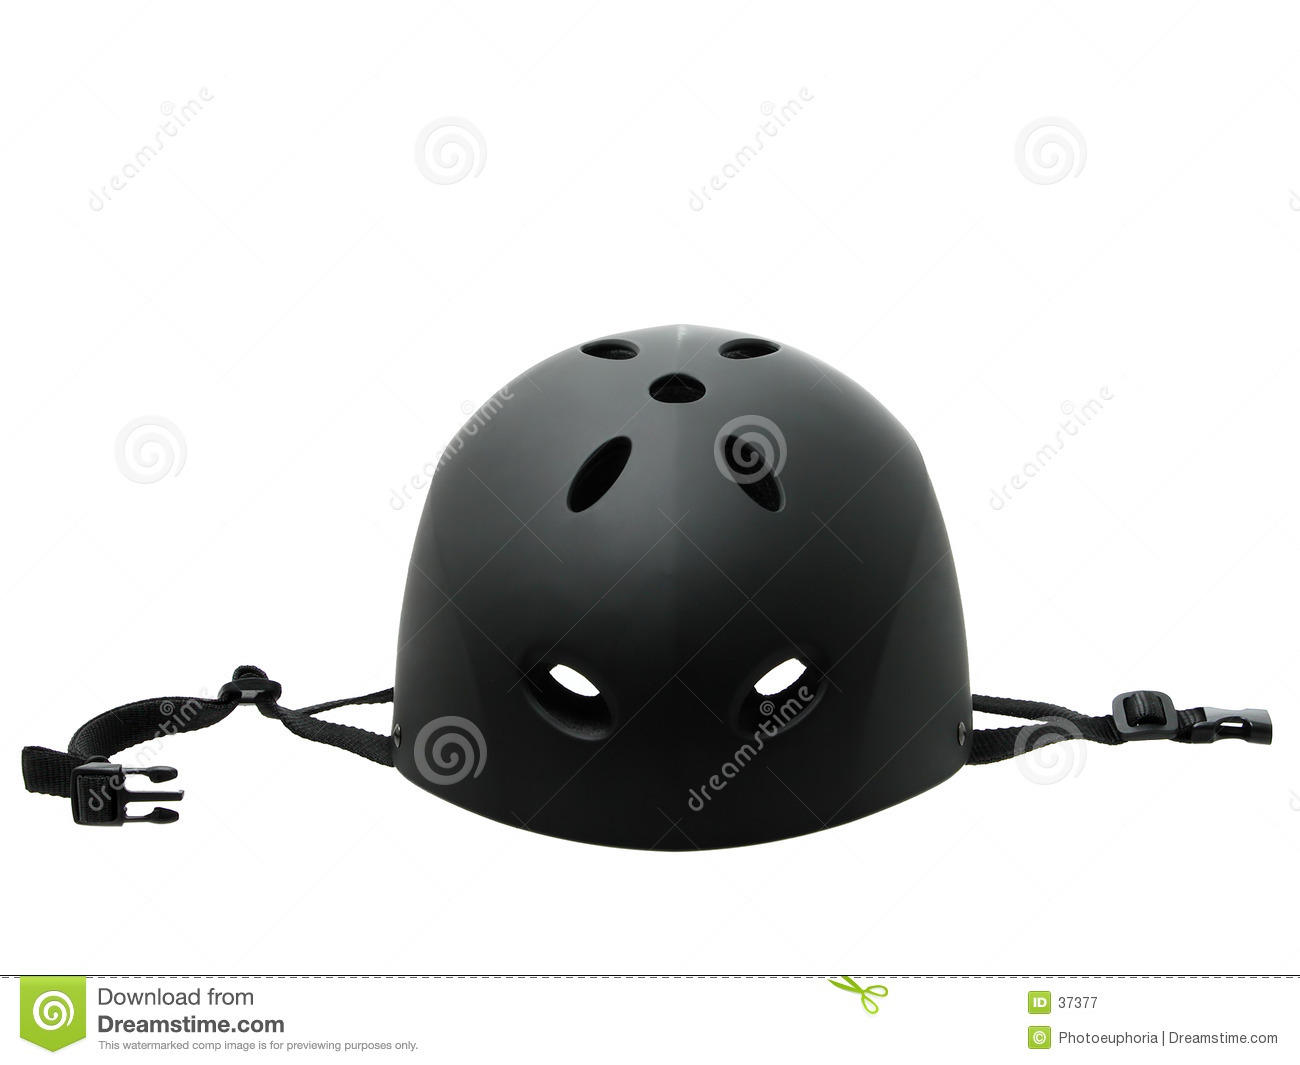 Toddler Safety Helmet (1 of 3)